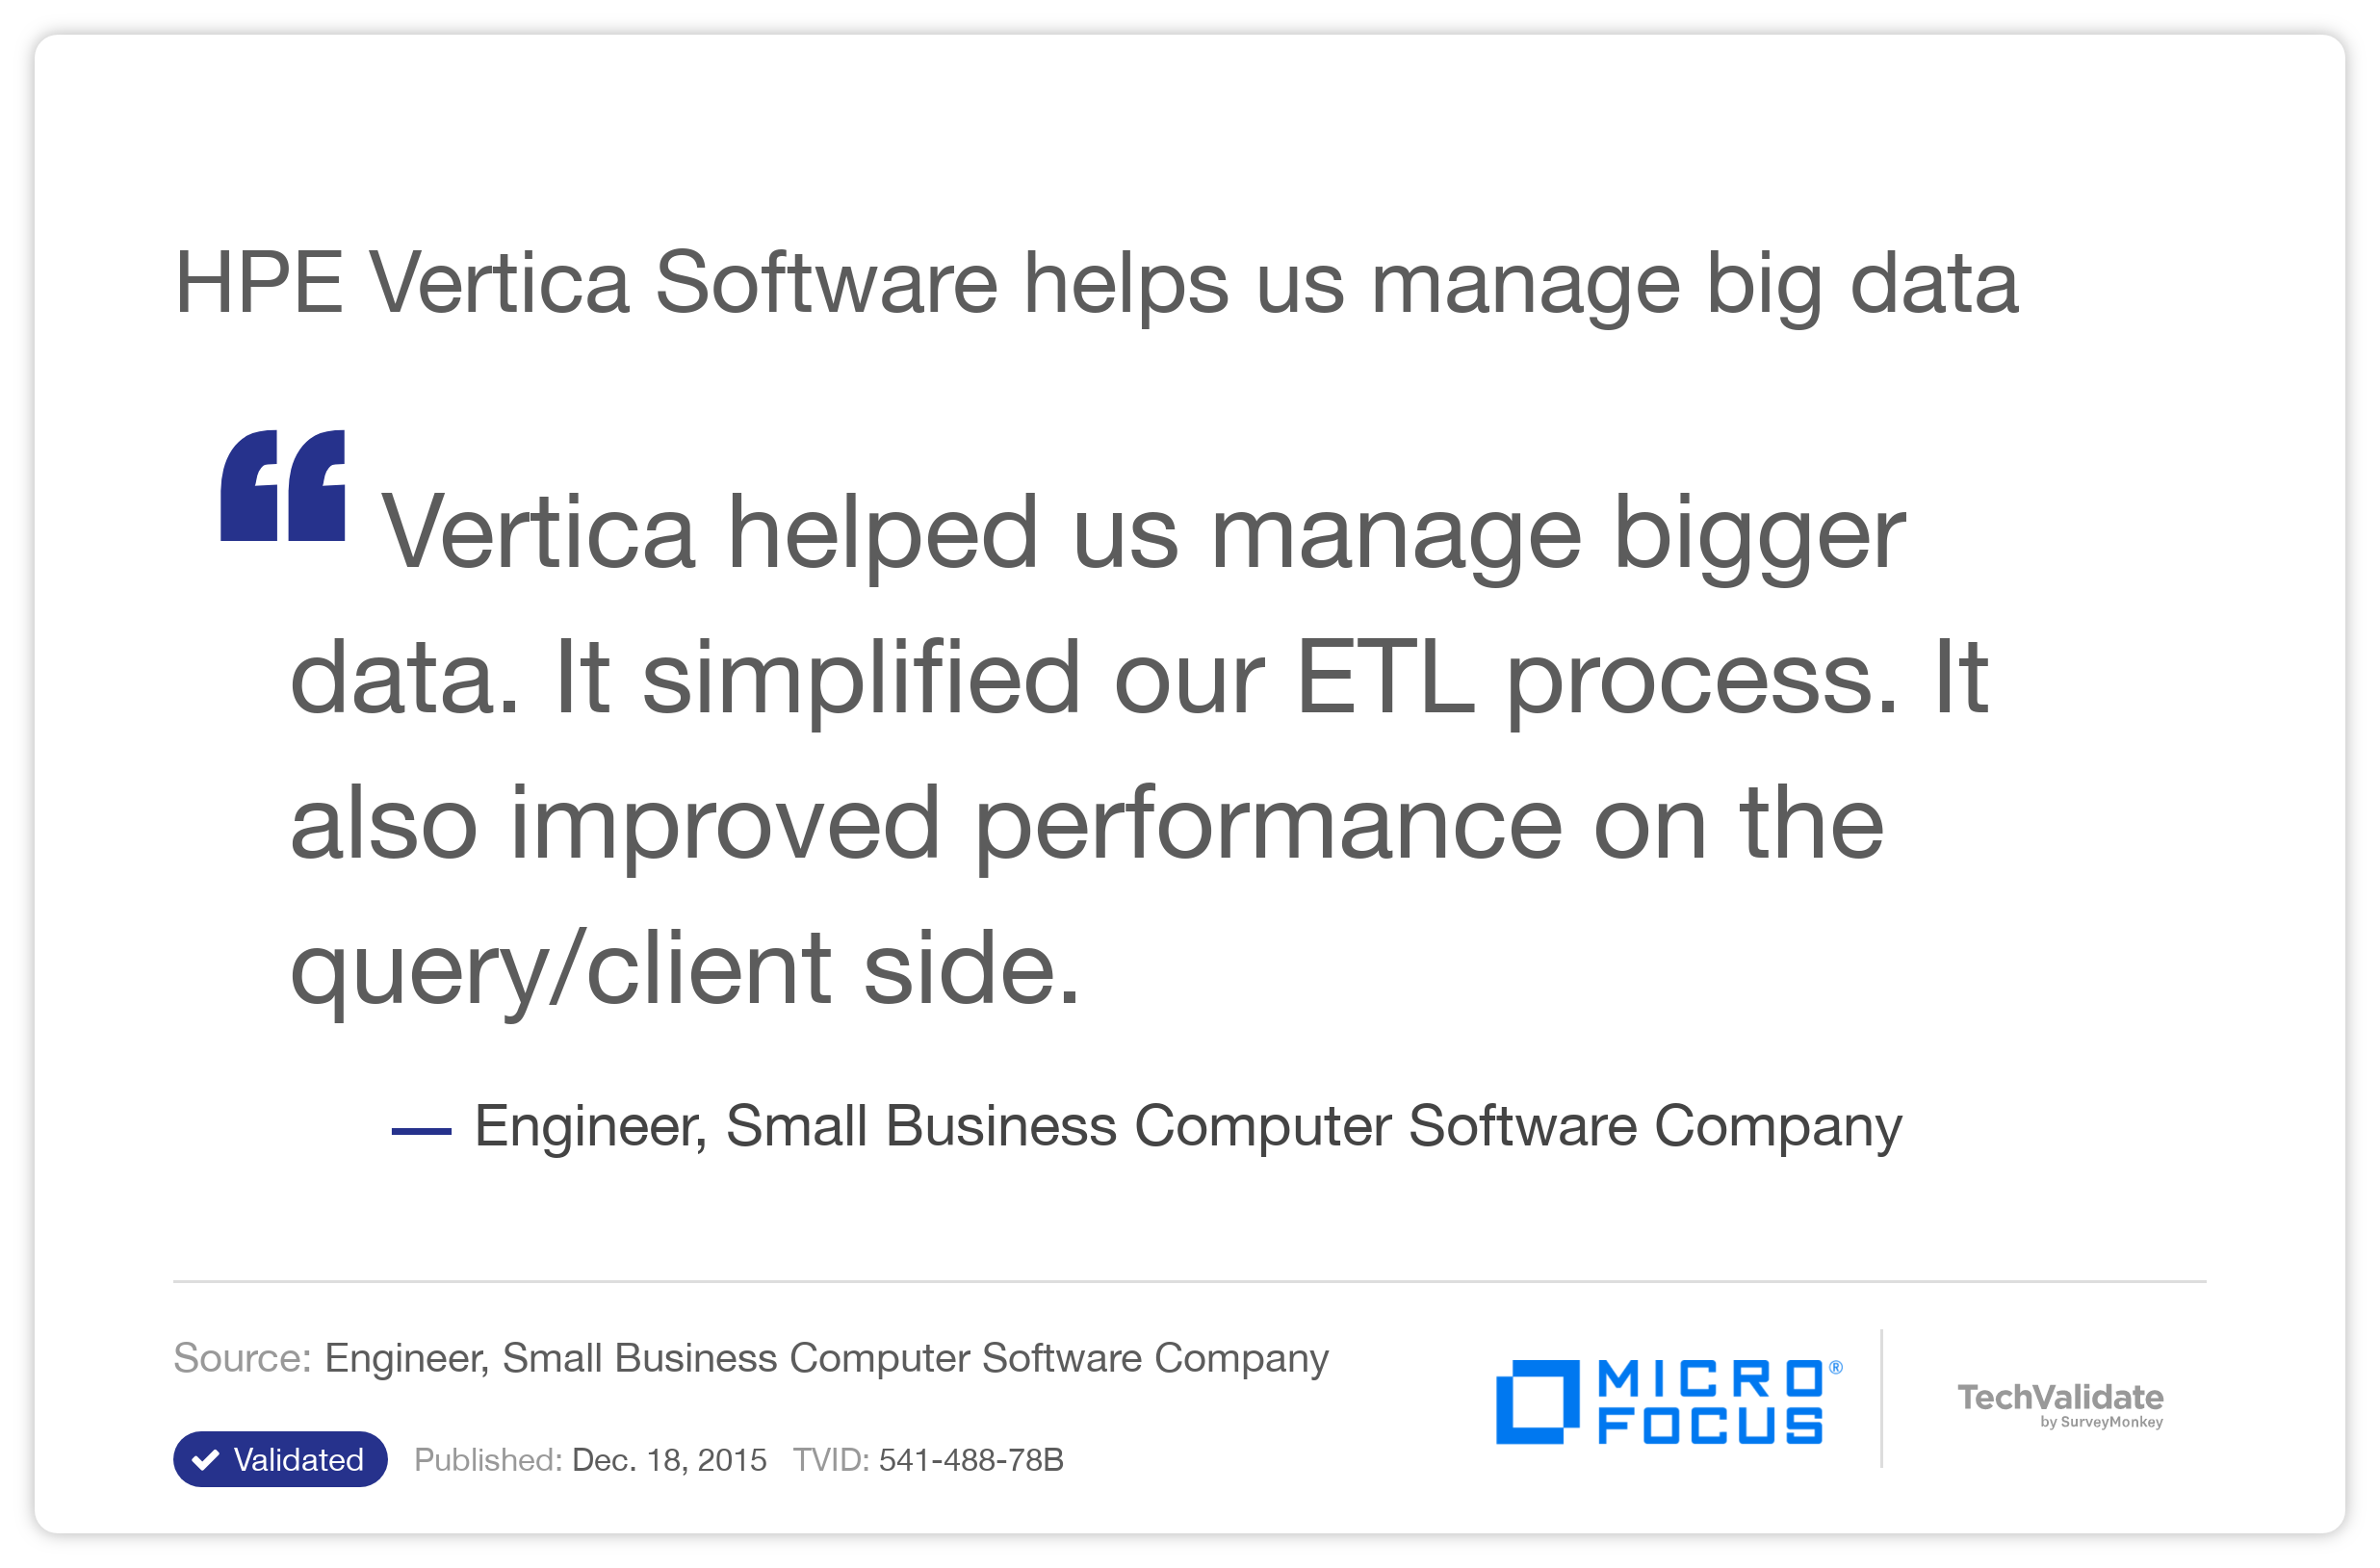 HPE Vertica Software helps us manage big data